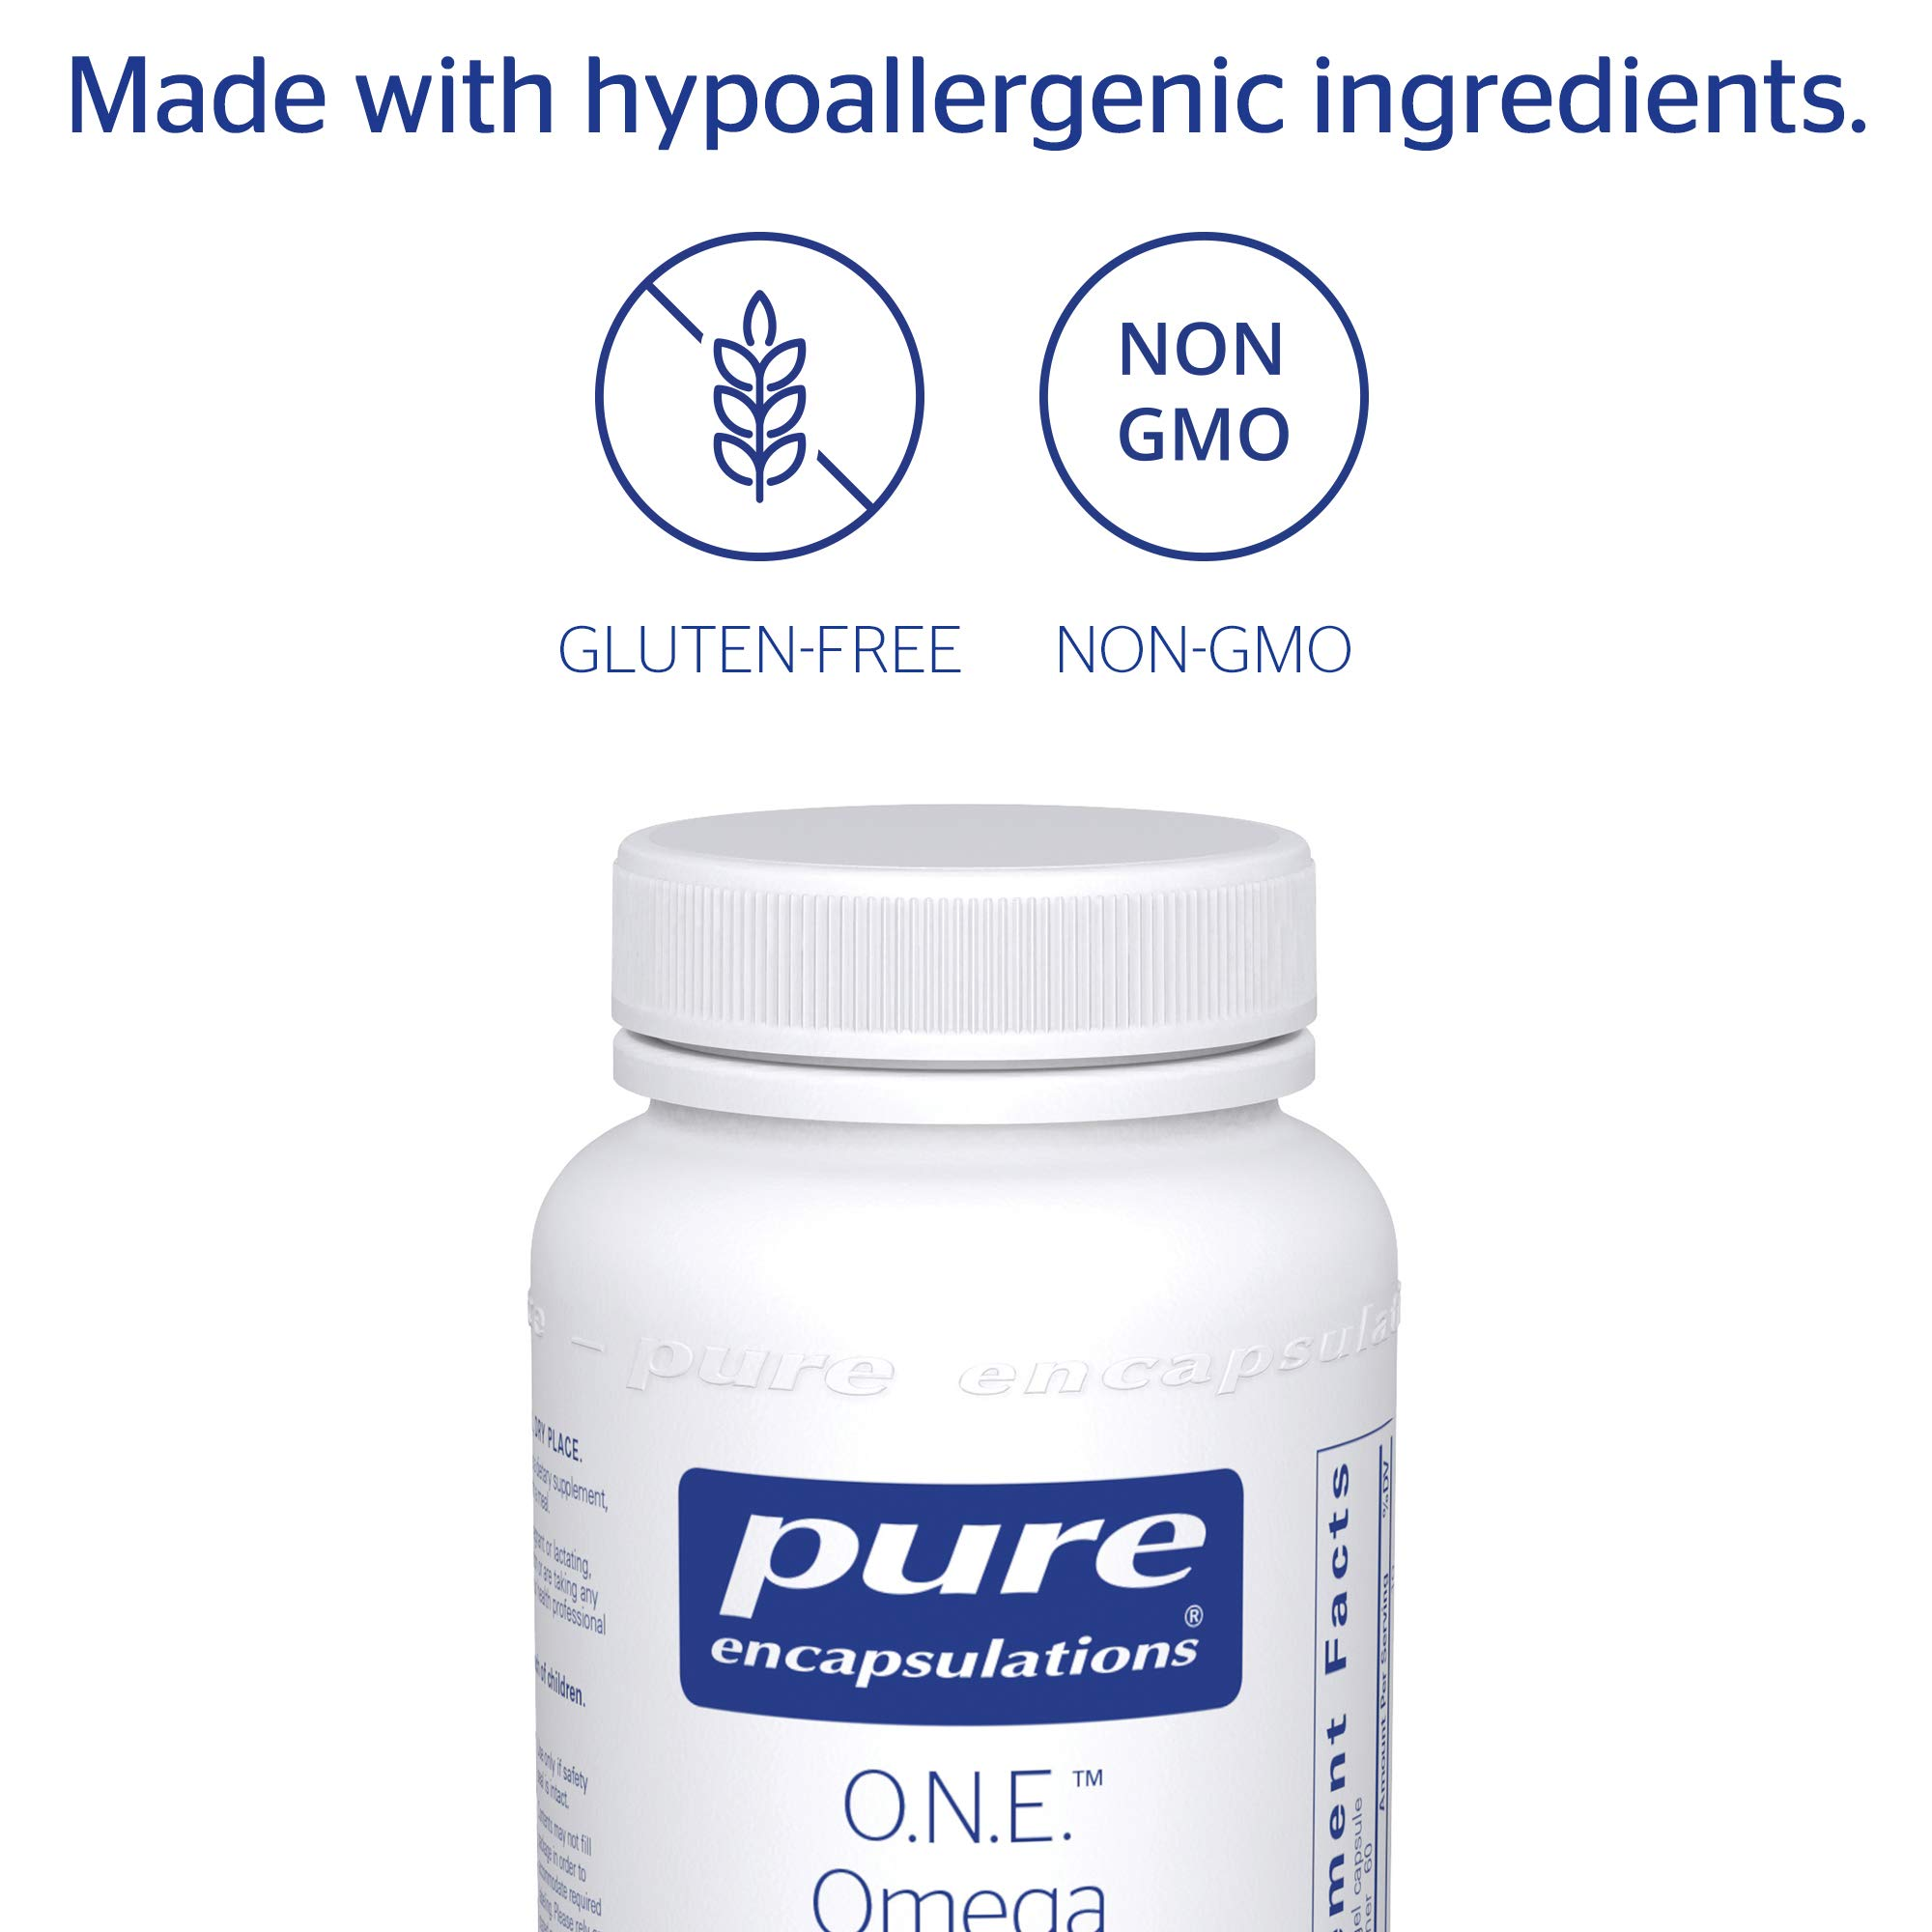 Pure Encapsulations - O.N.E. Omega - Fish Oil Capsules to Support Cardiovascular, Joint, Cognitive, and Skin Health* - 60 Softgel Capsules by Pure Encapsulations (Image #4)